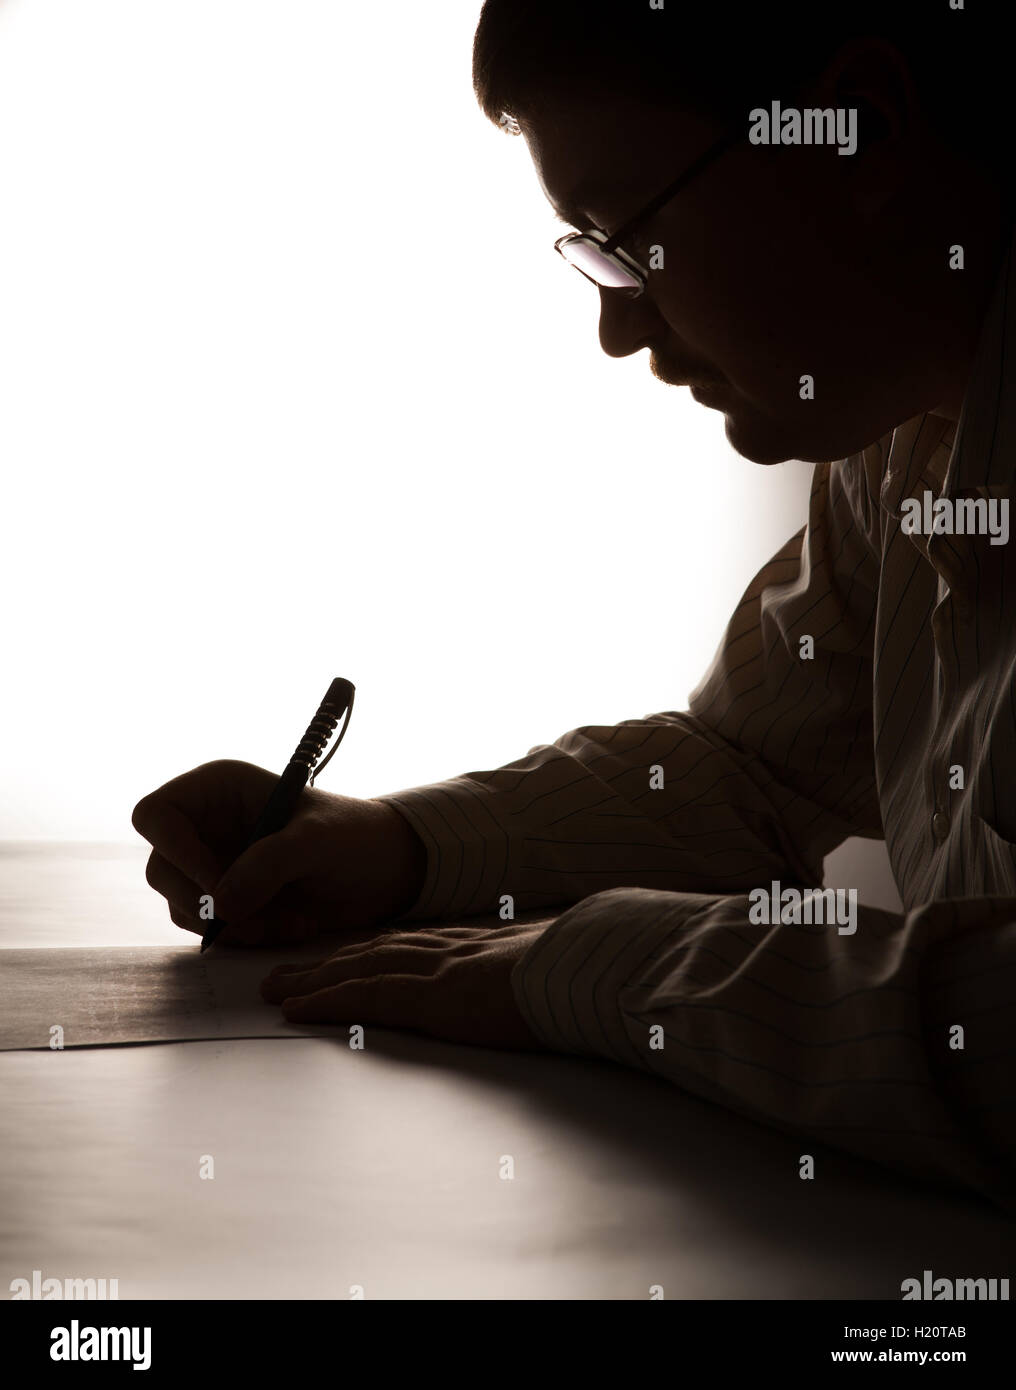 silhouette man is  writting on a sheet of paper - Stock Image